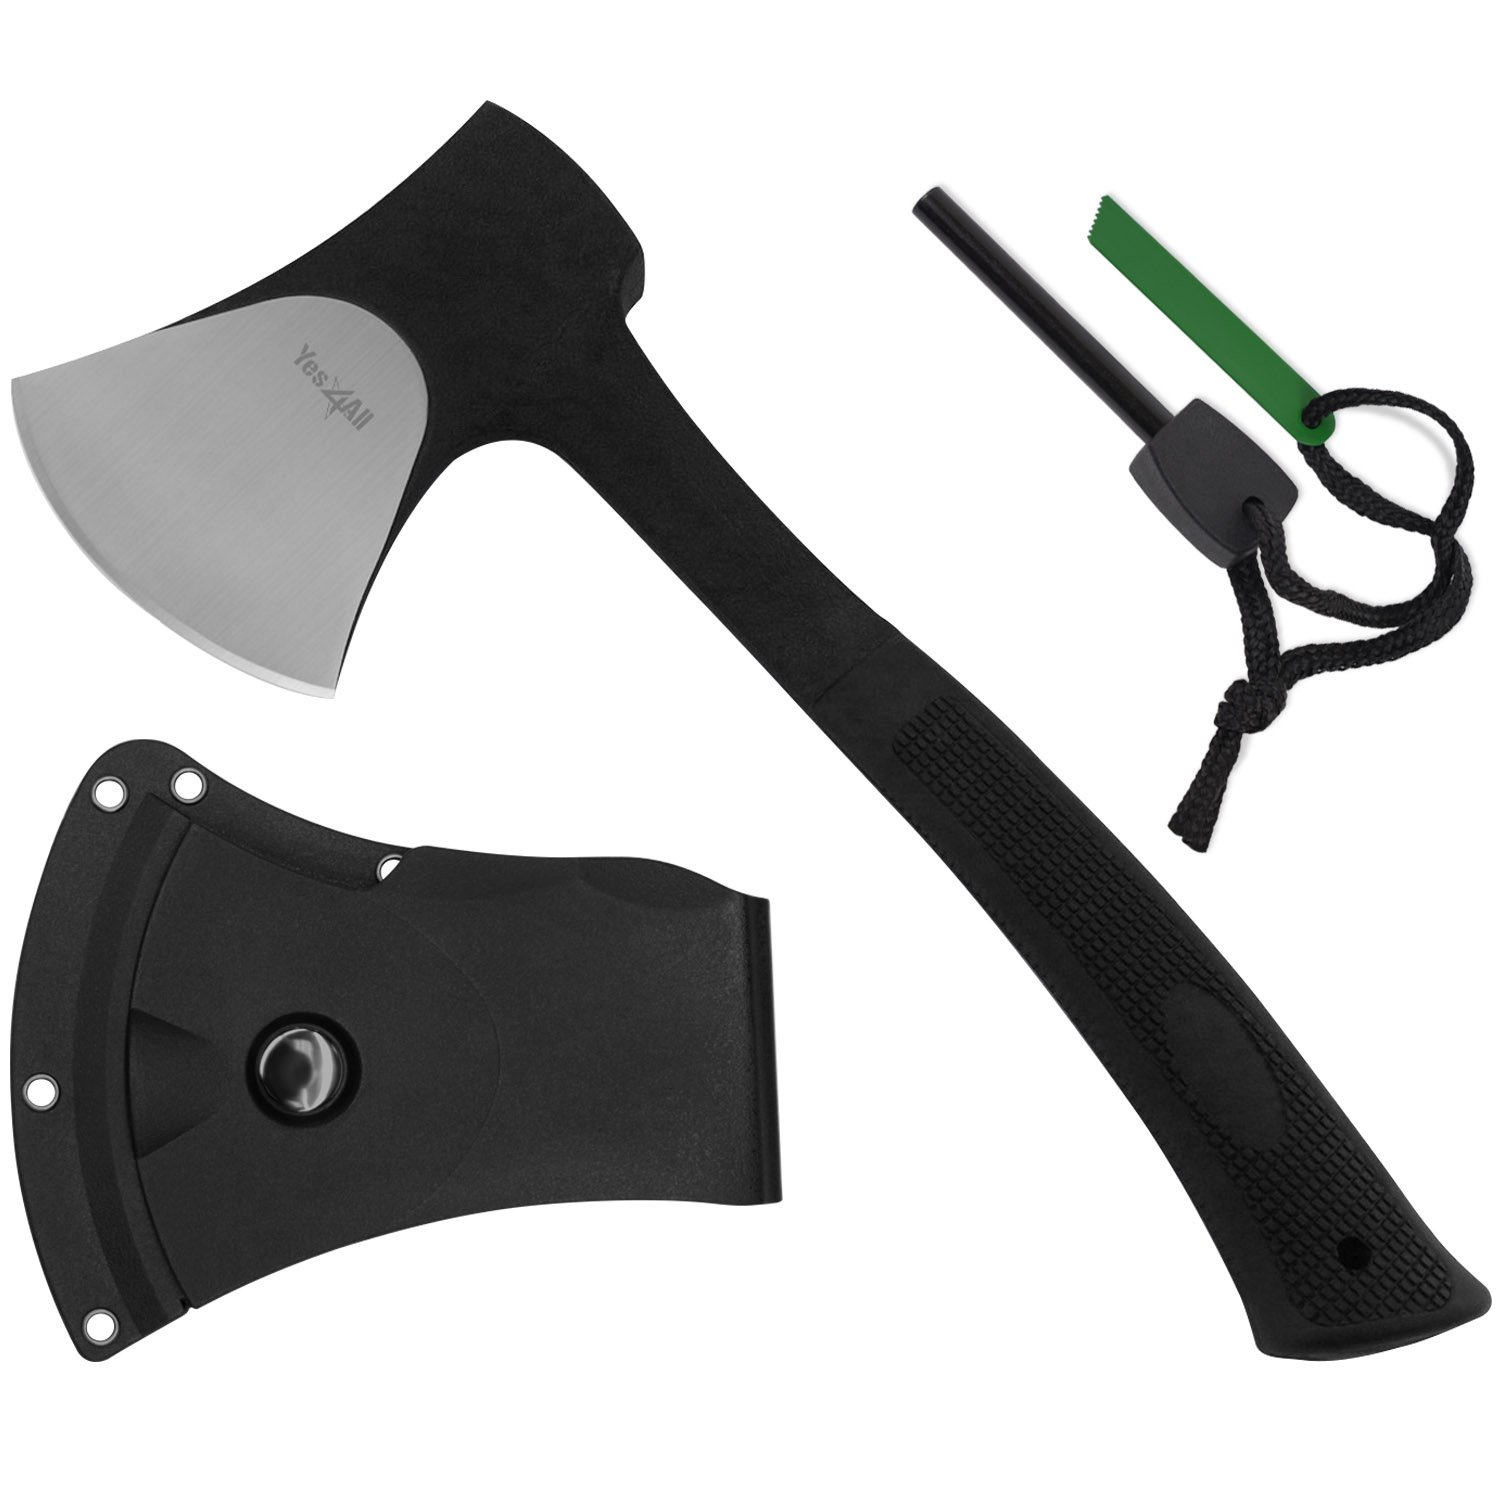 Yes4All Special Sales Outdoor Camping Hunting Survival Steel Multi Functional Axe w/Sheath H105 (Axe Sheath and Fire Starter)